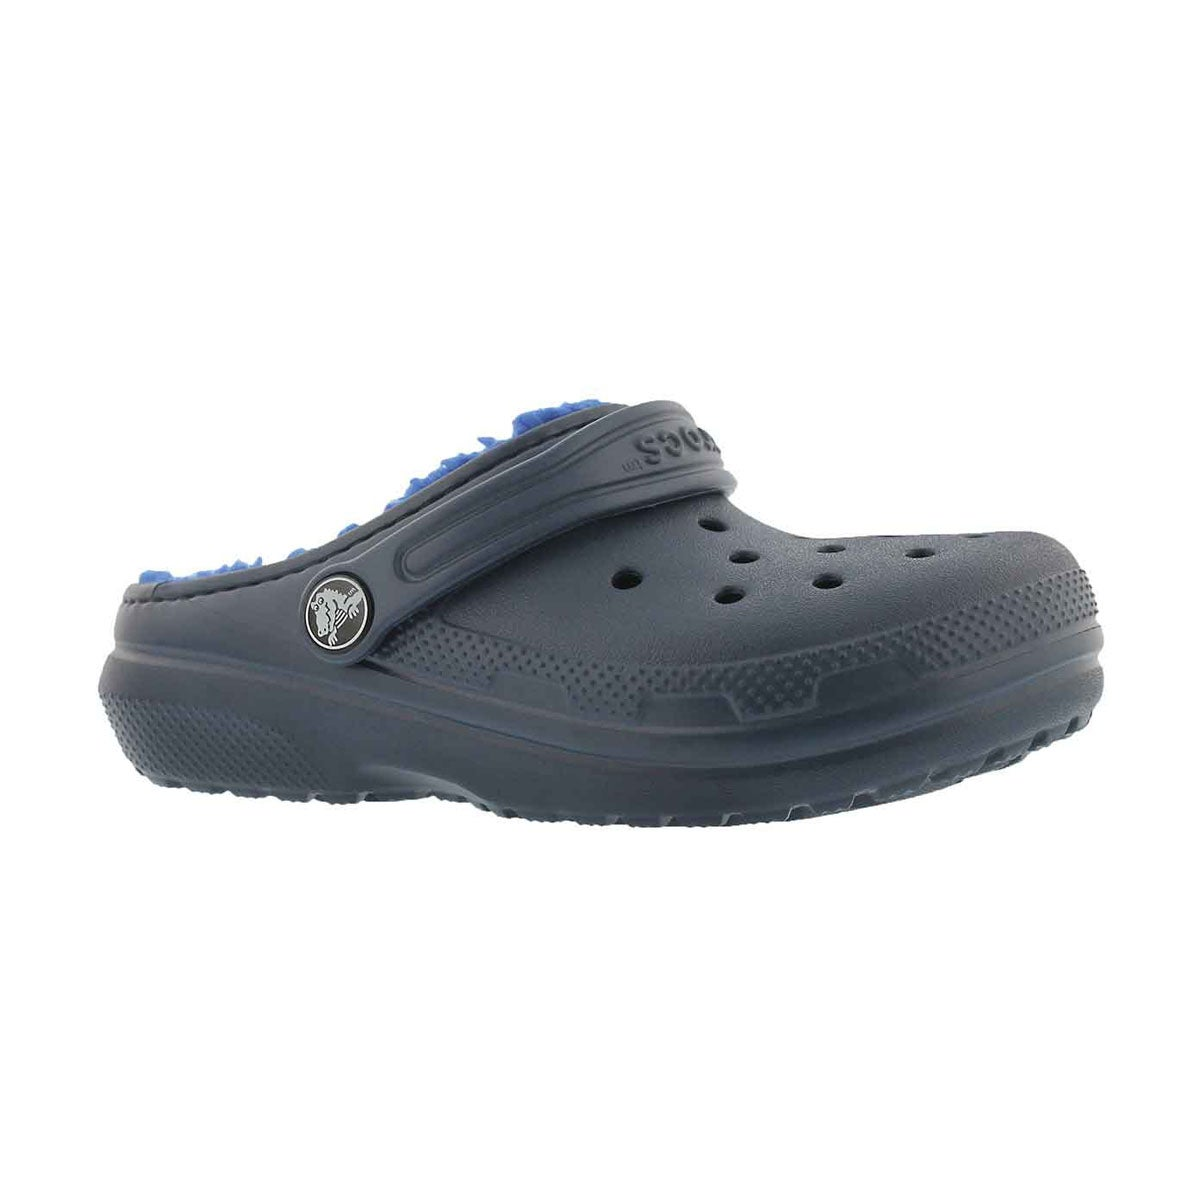 Kids' CLASSIC LINED navy comfort clogs